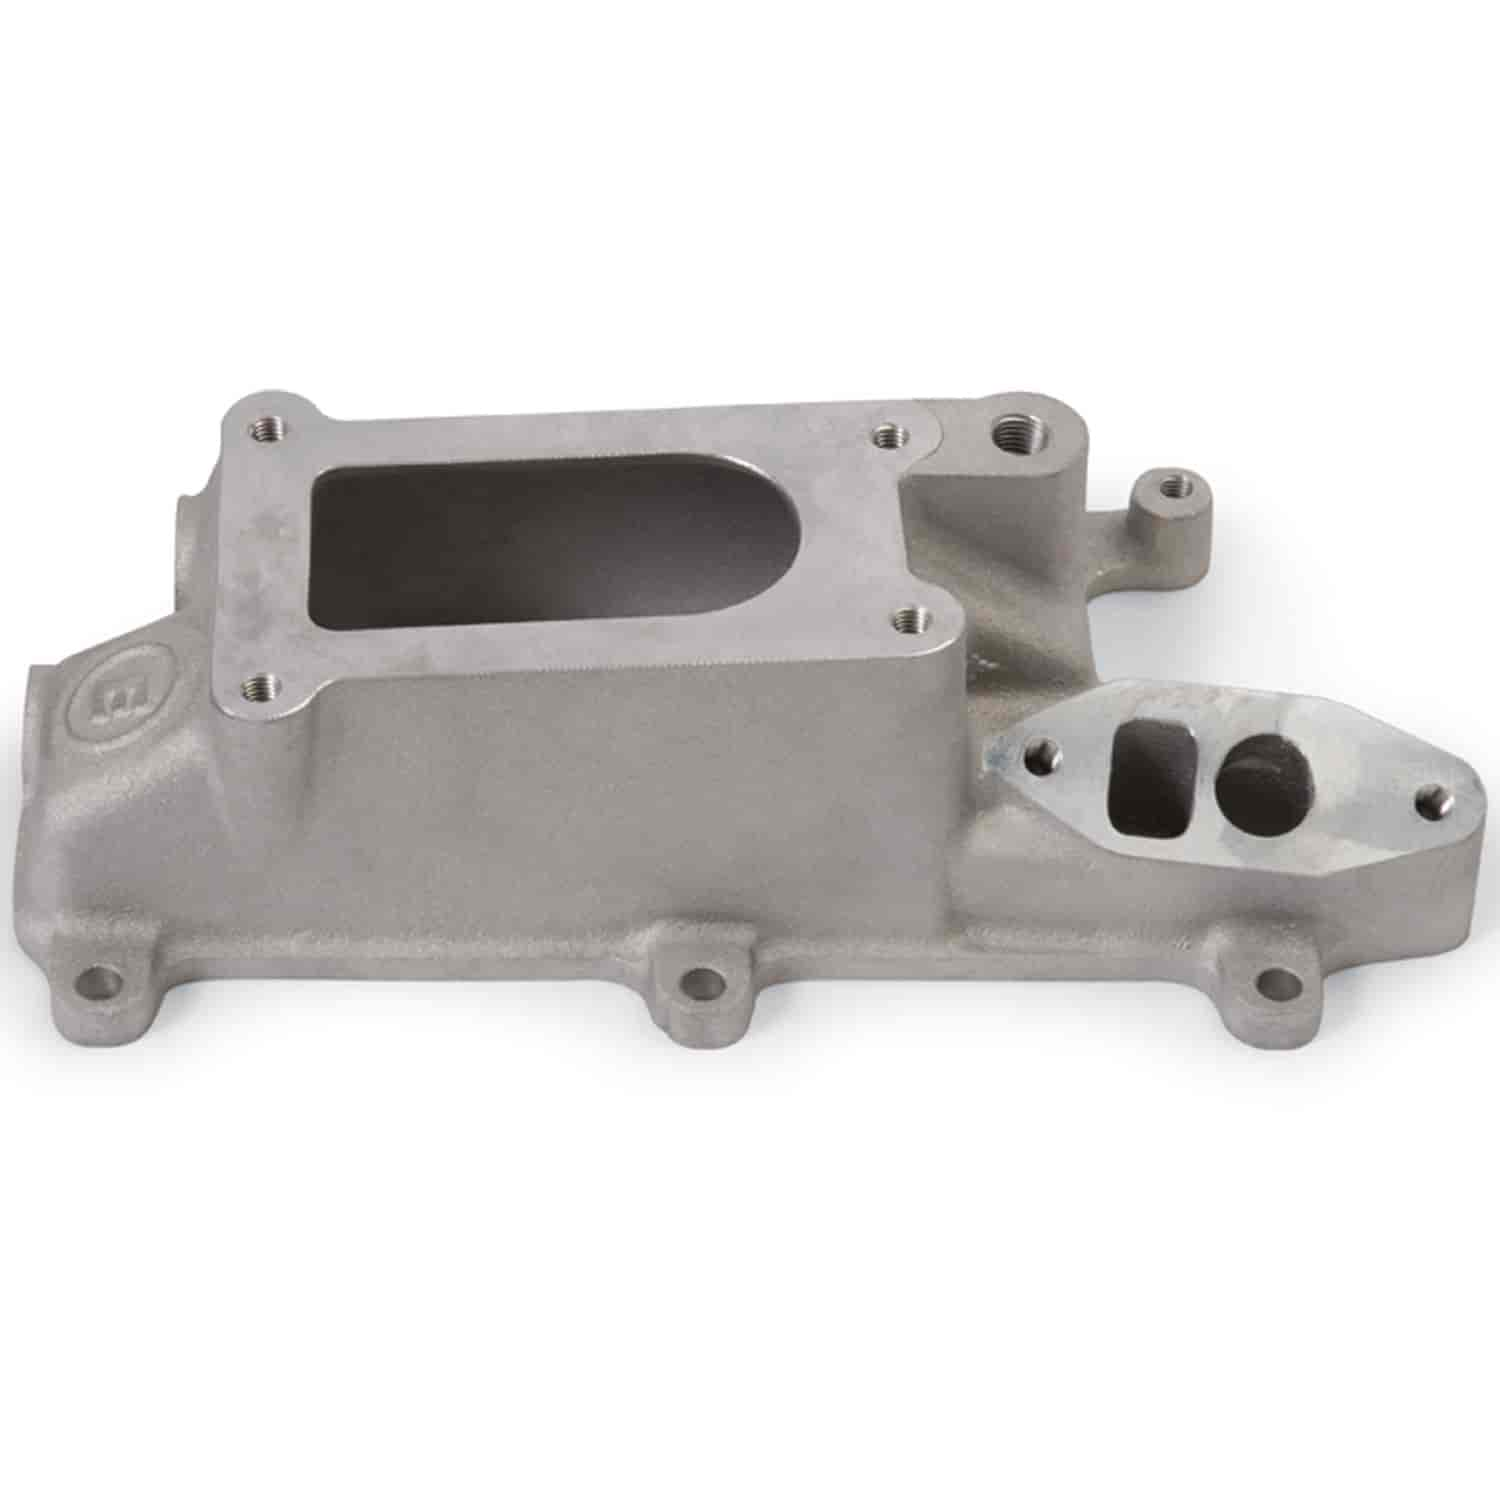 Edelbrock 3787 - Edelbrock Performer Intake Manifolds for Chevy